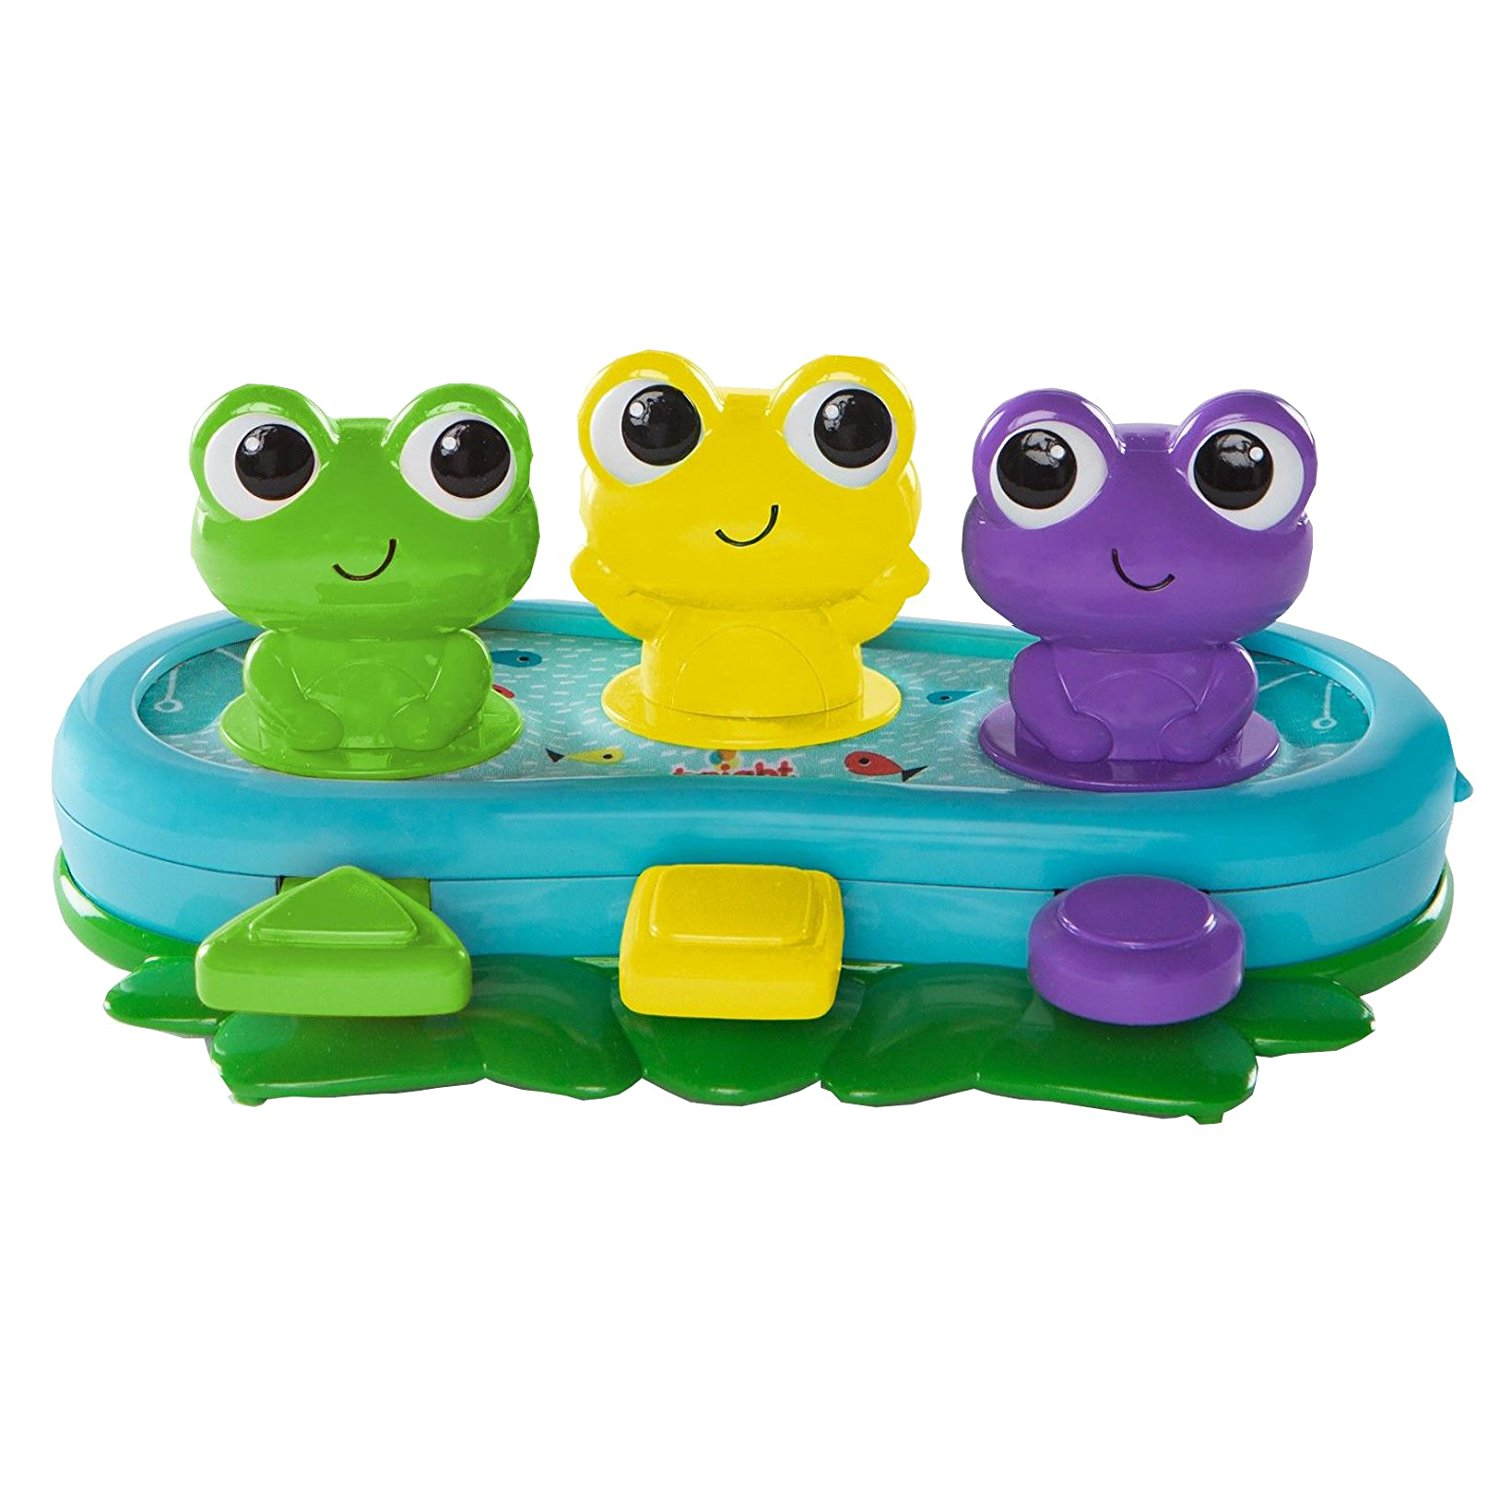 Bop & Giggle Frogs Toys, Press the paddles to watch the frogs bounce and wiggle By Bright... by